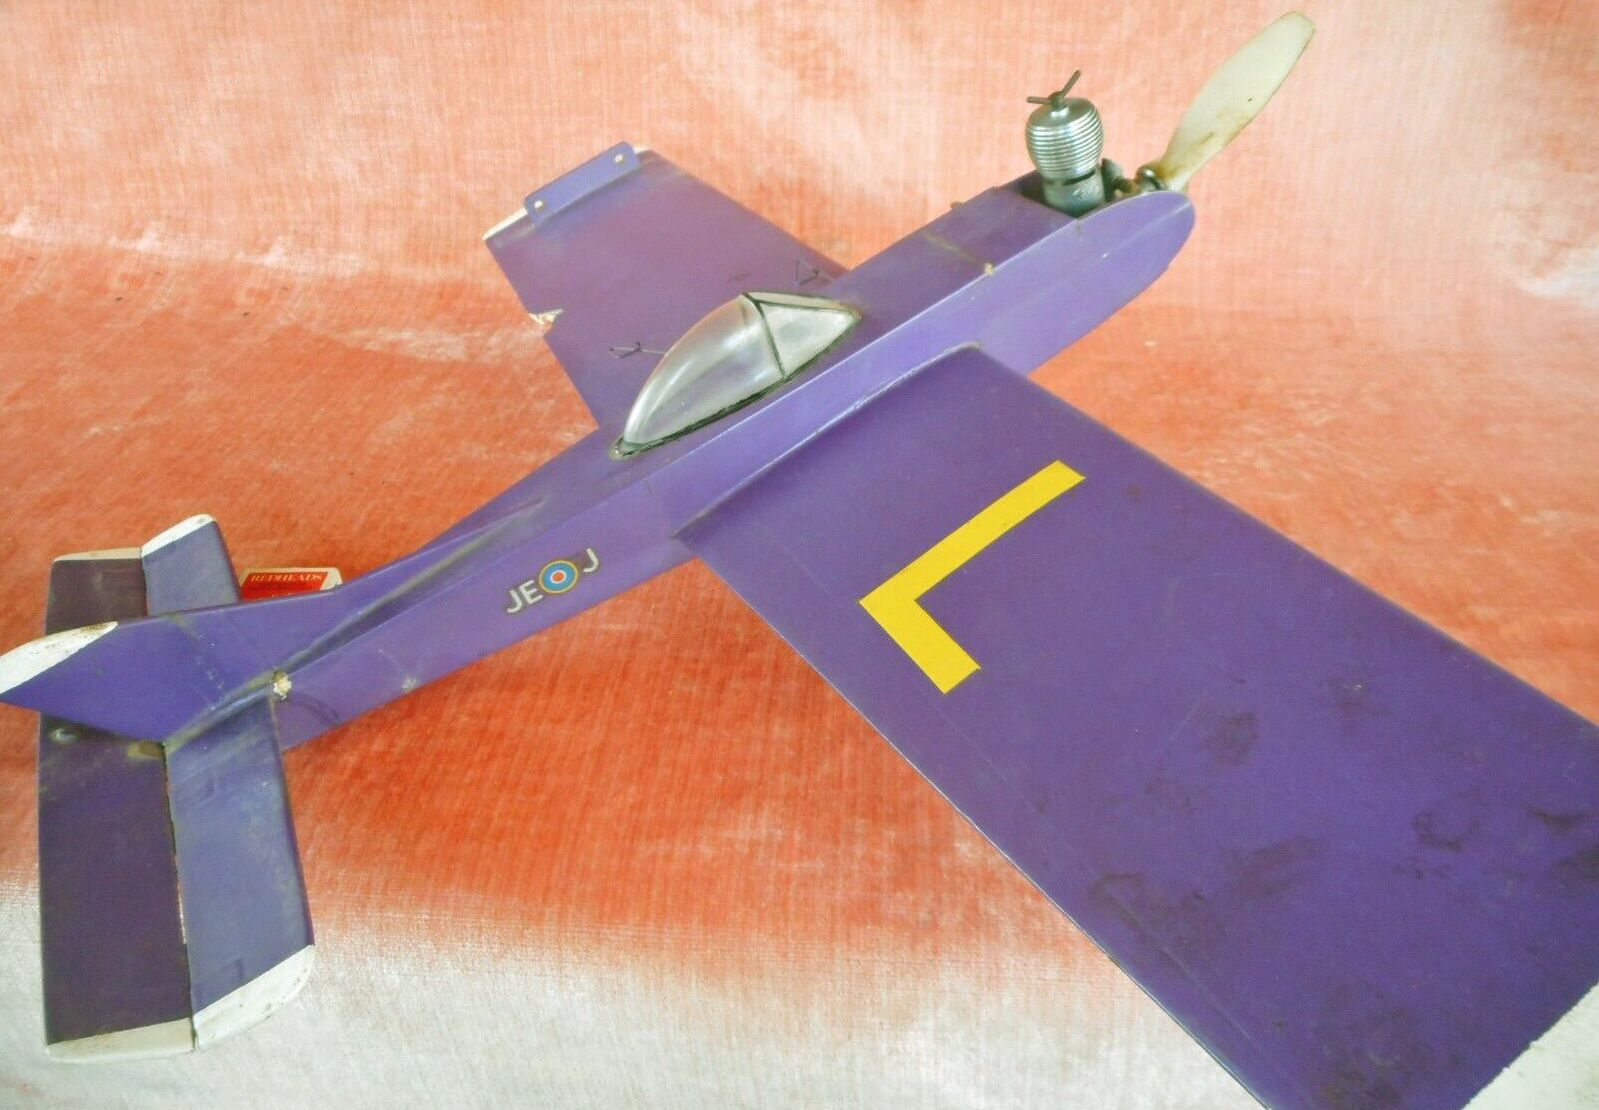 Aeroflyte Taipan Trainer That Sold On Ebay 02 Jan 2020 For Au 176 50 With An English Elfin 249 Diesel Engine In 2020 Model Aircraft